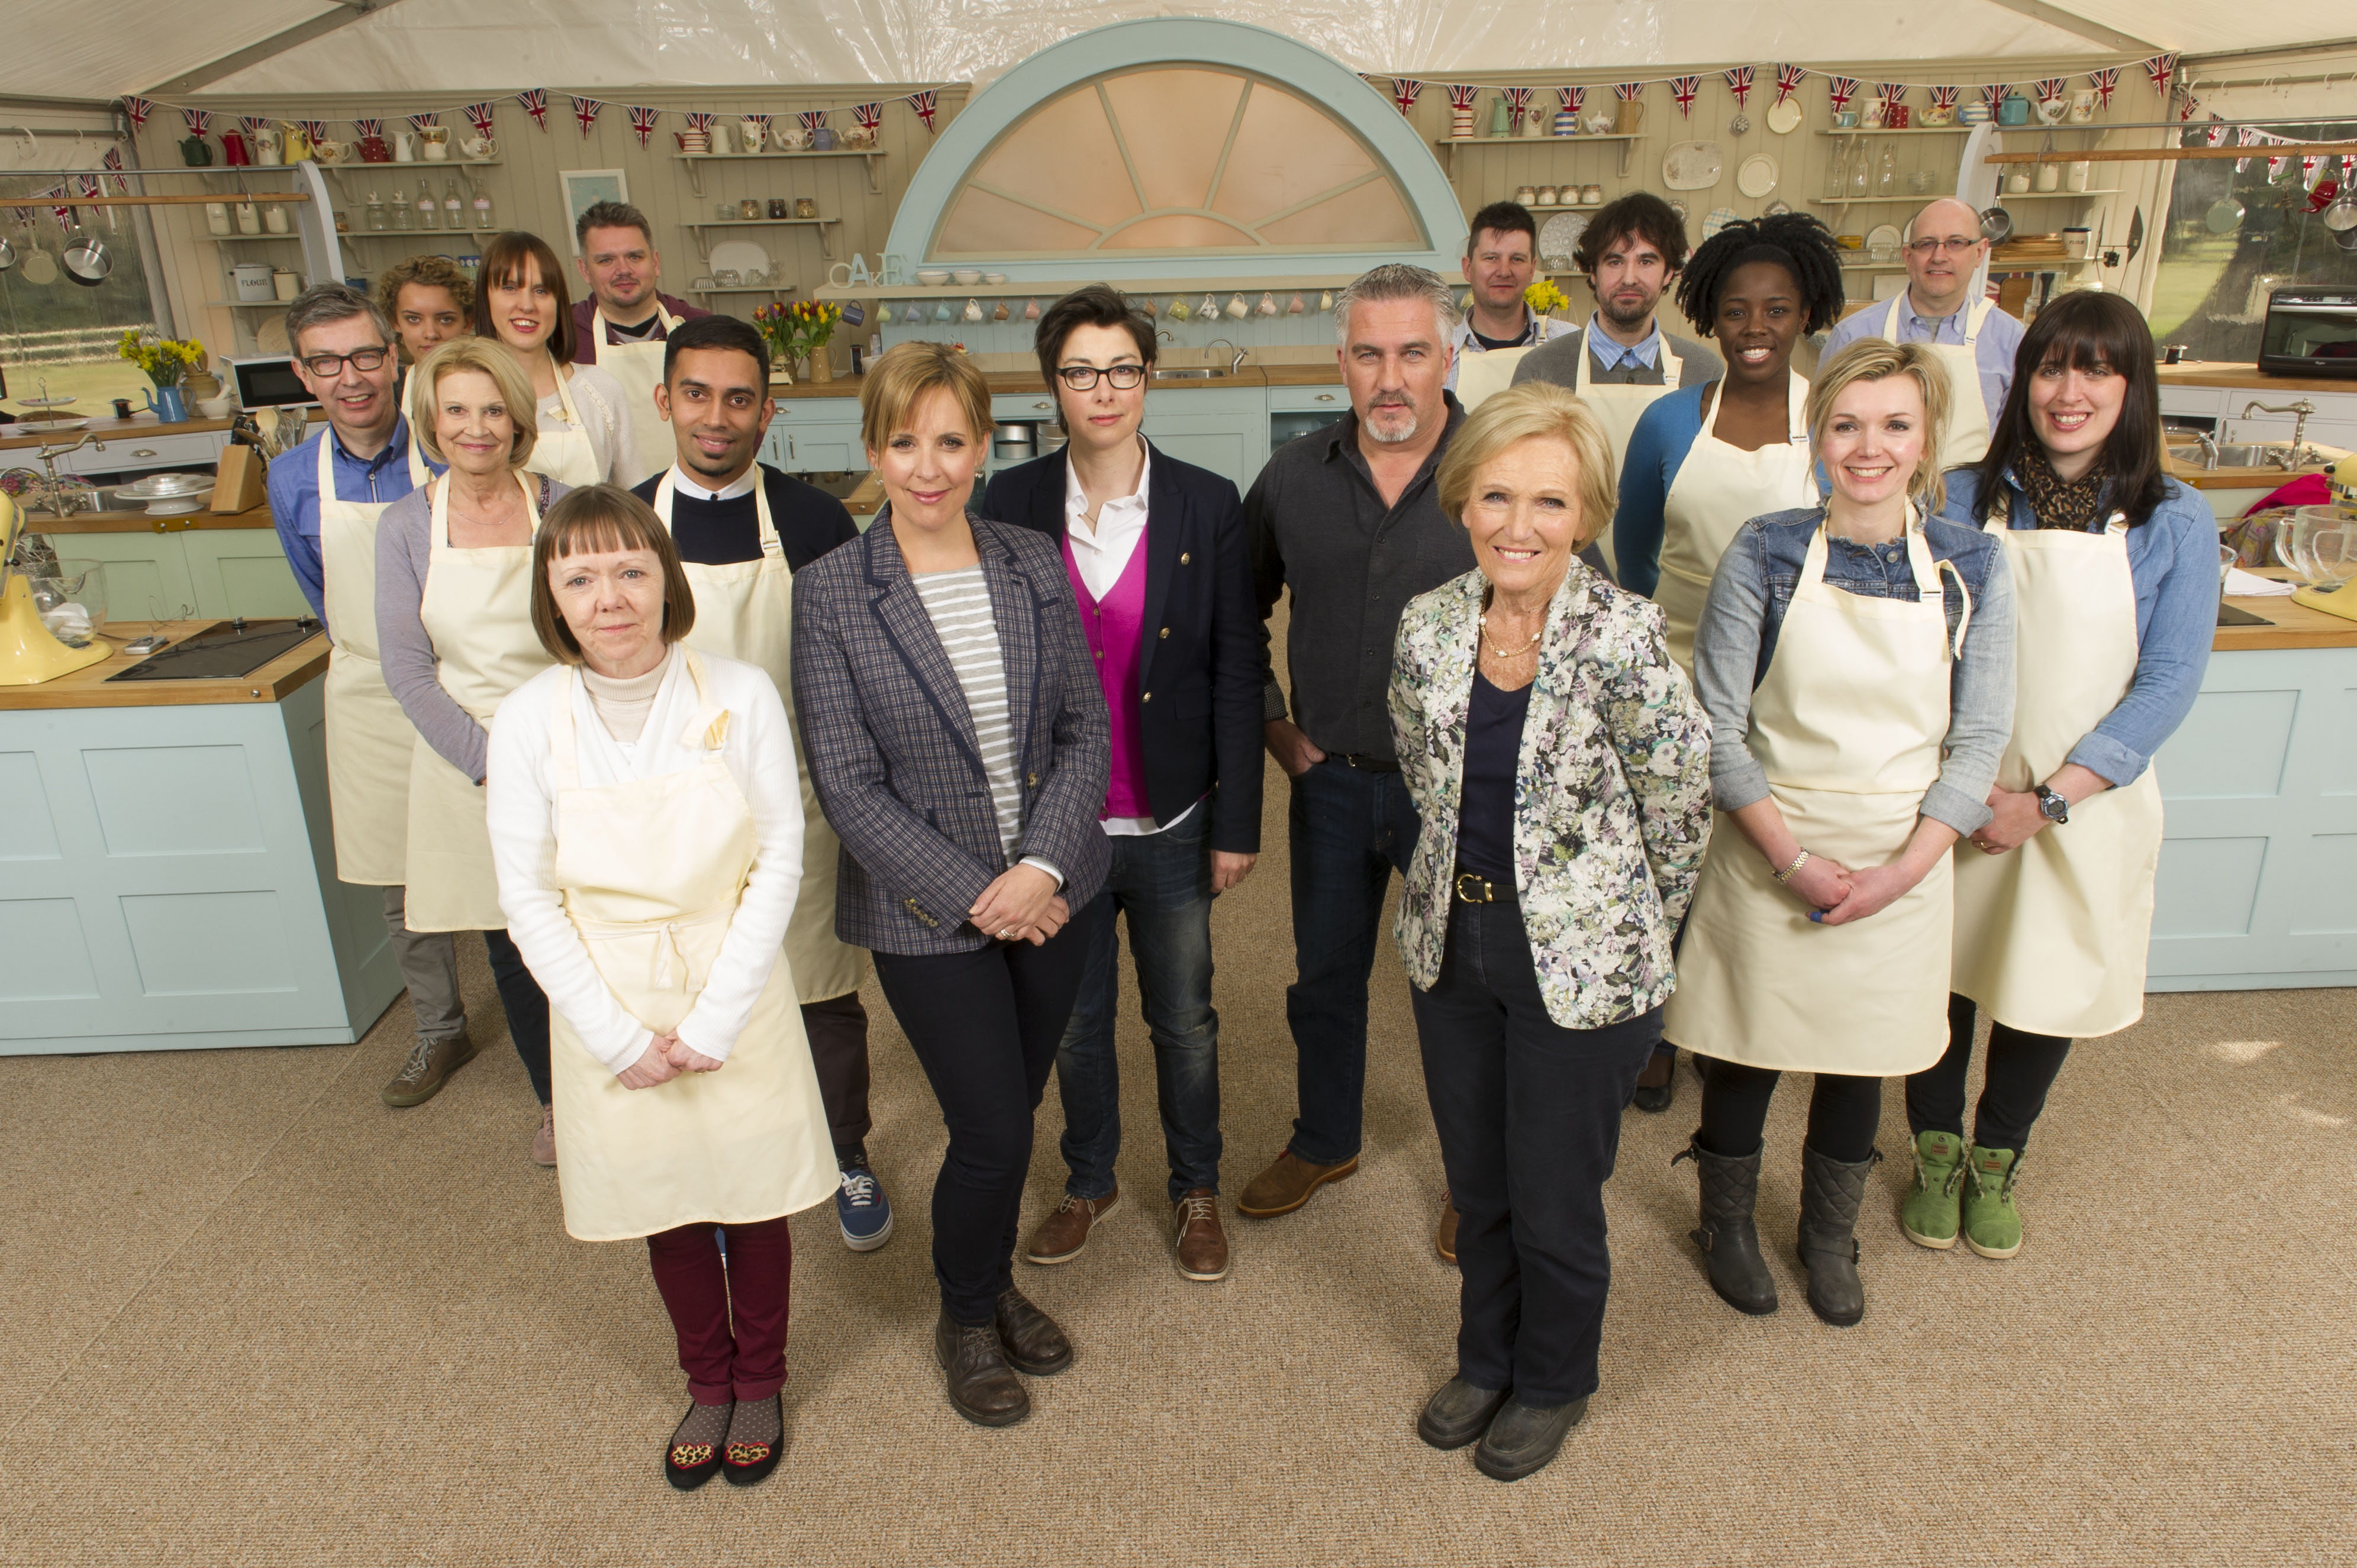 The Great British Baking Show' Returns to PBS This Fall